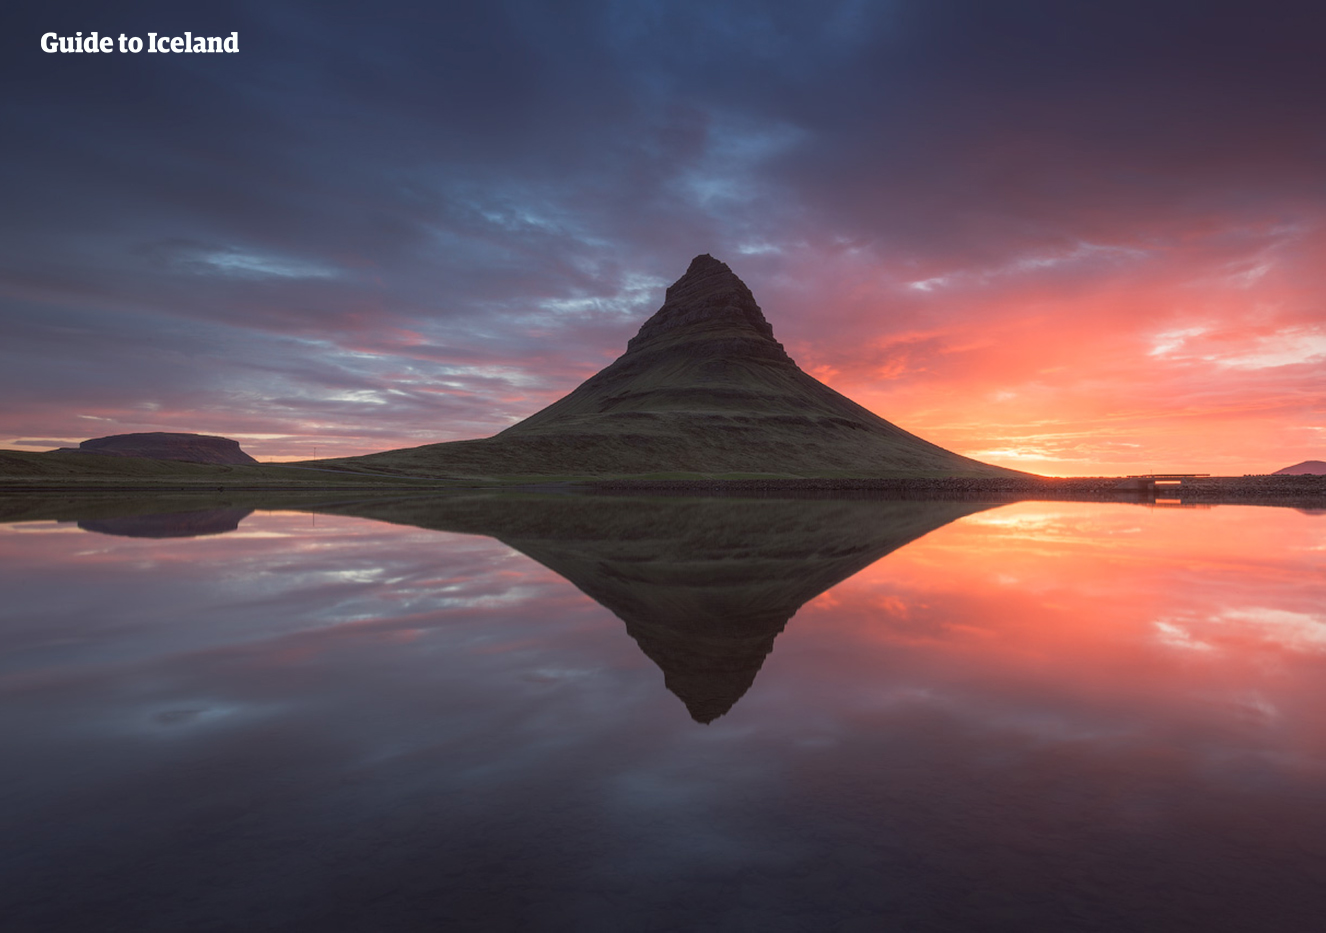 Kirkjufell Mountain on the Snaefellsnes Peninsula of Iceland pictured at sunset in summer.